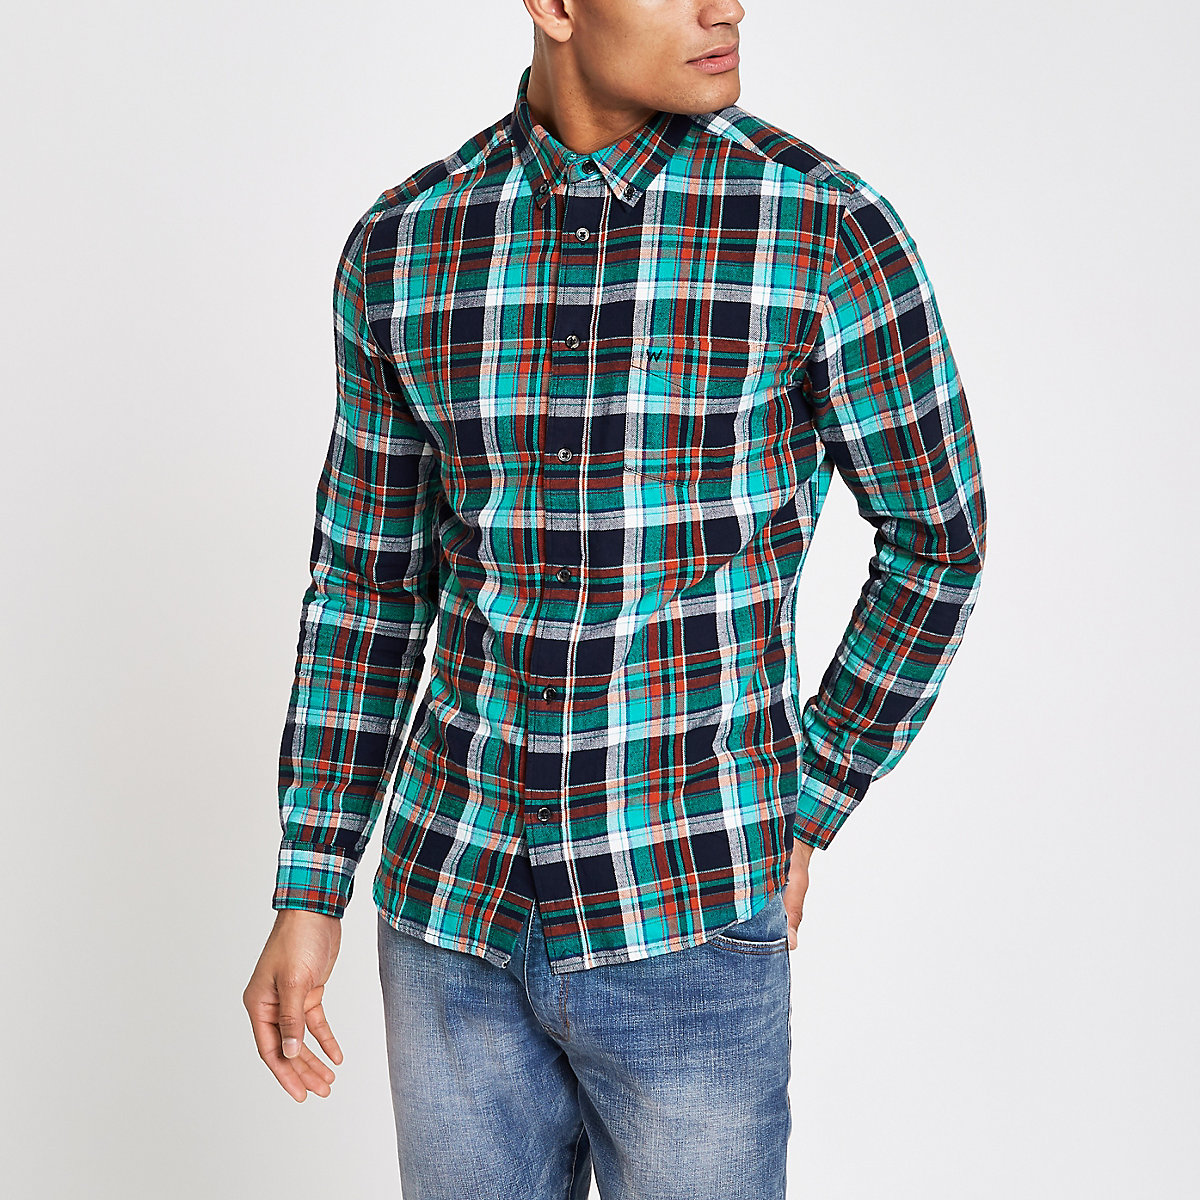 Wrangler blue long sleeve check shirt